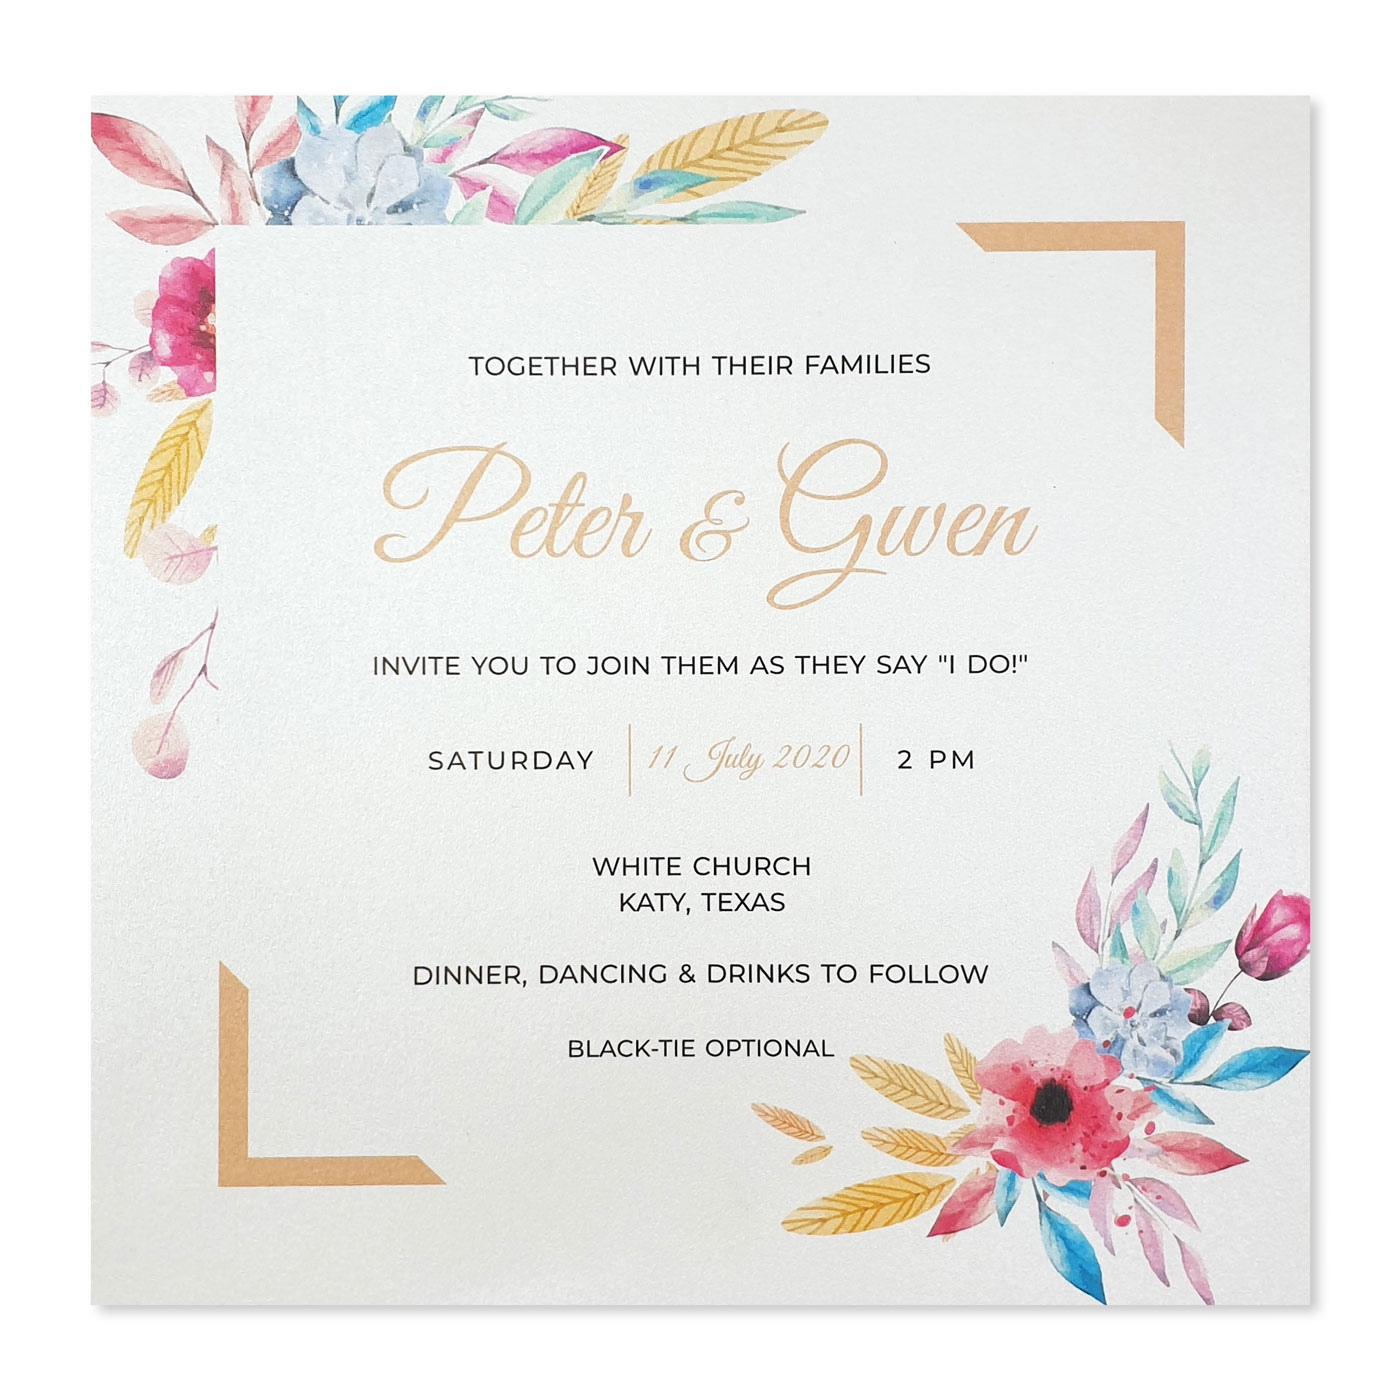 WHITE SHIMMERY FLORAL THEMED WEDDING INVITATION : A-BOUQUET - A2zWeddingCards